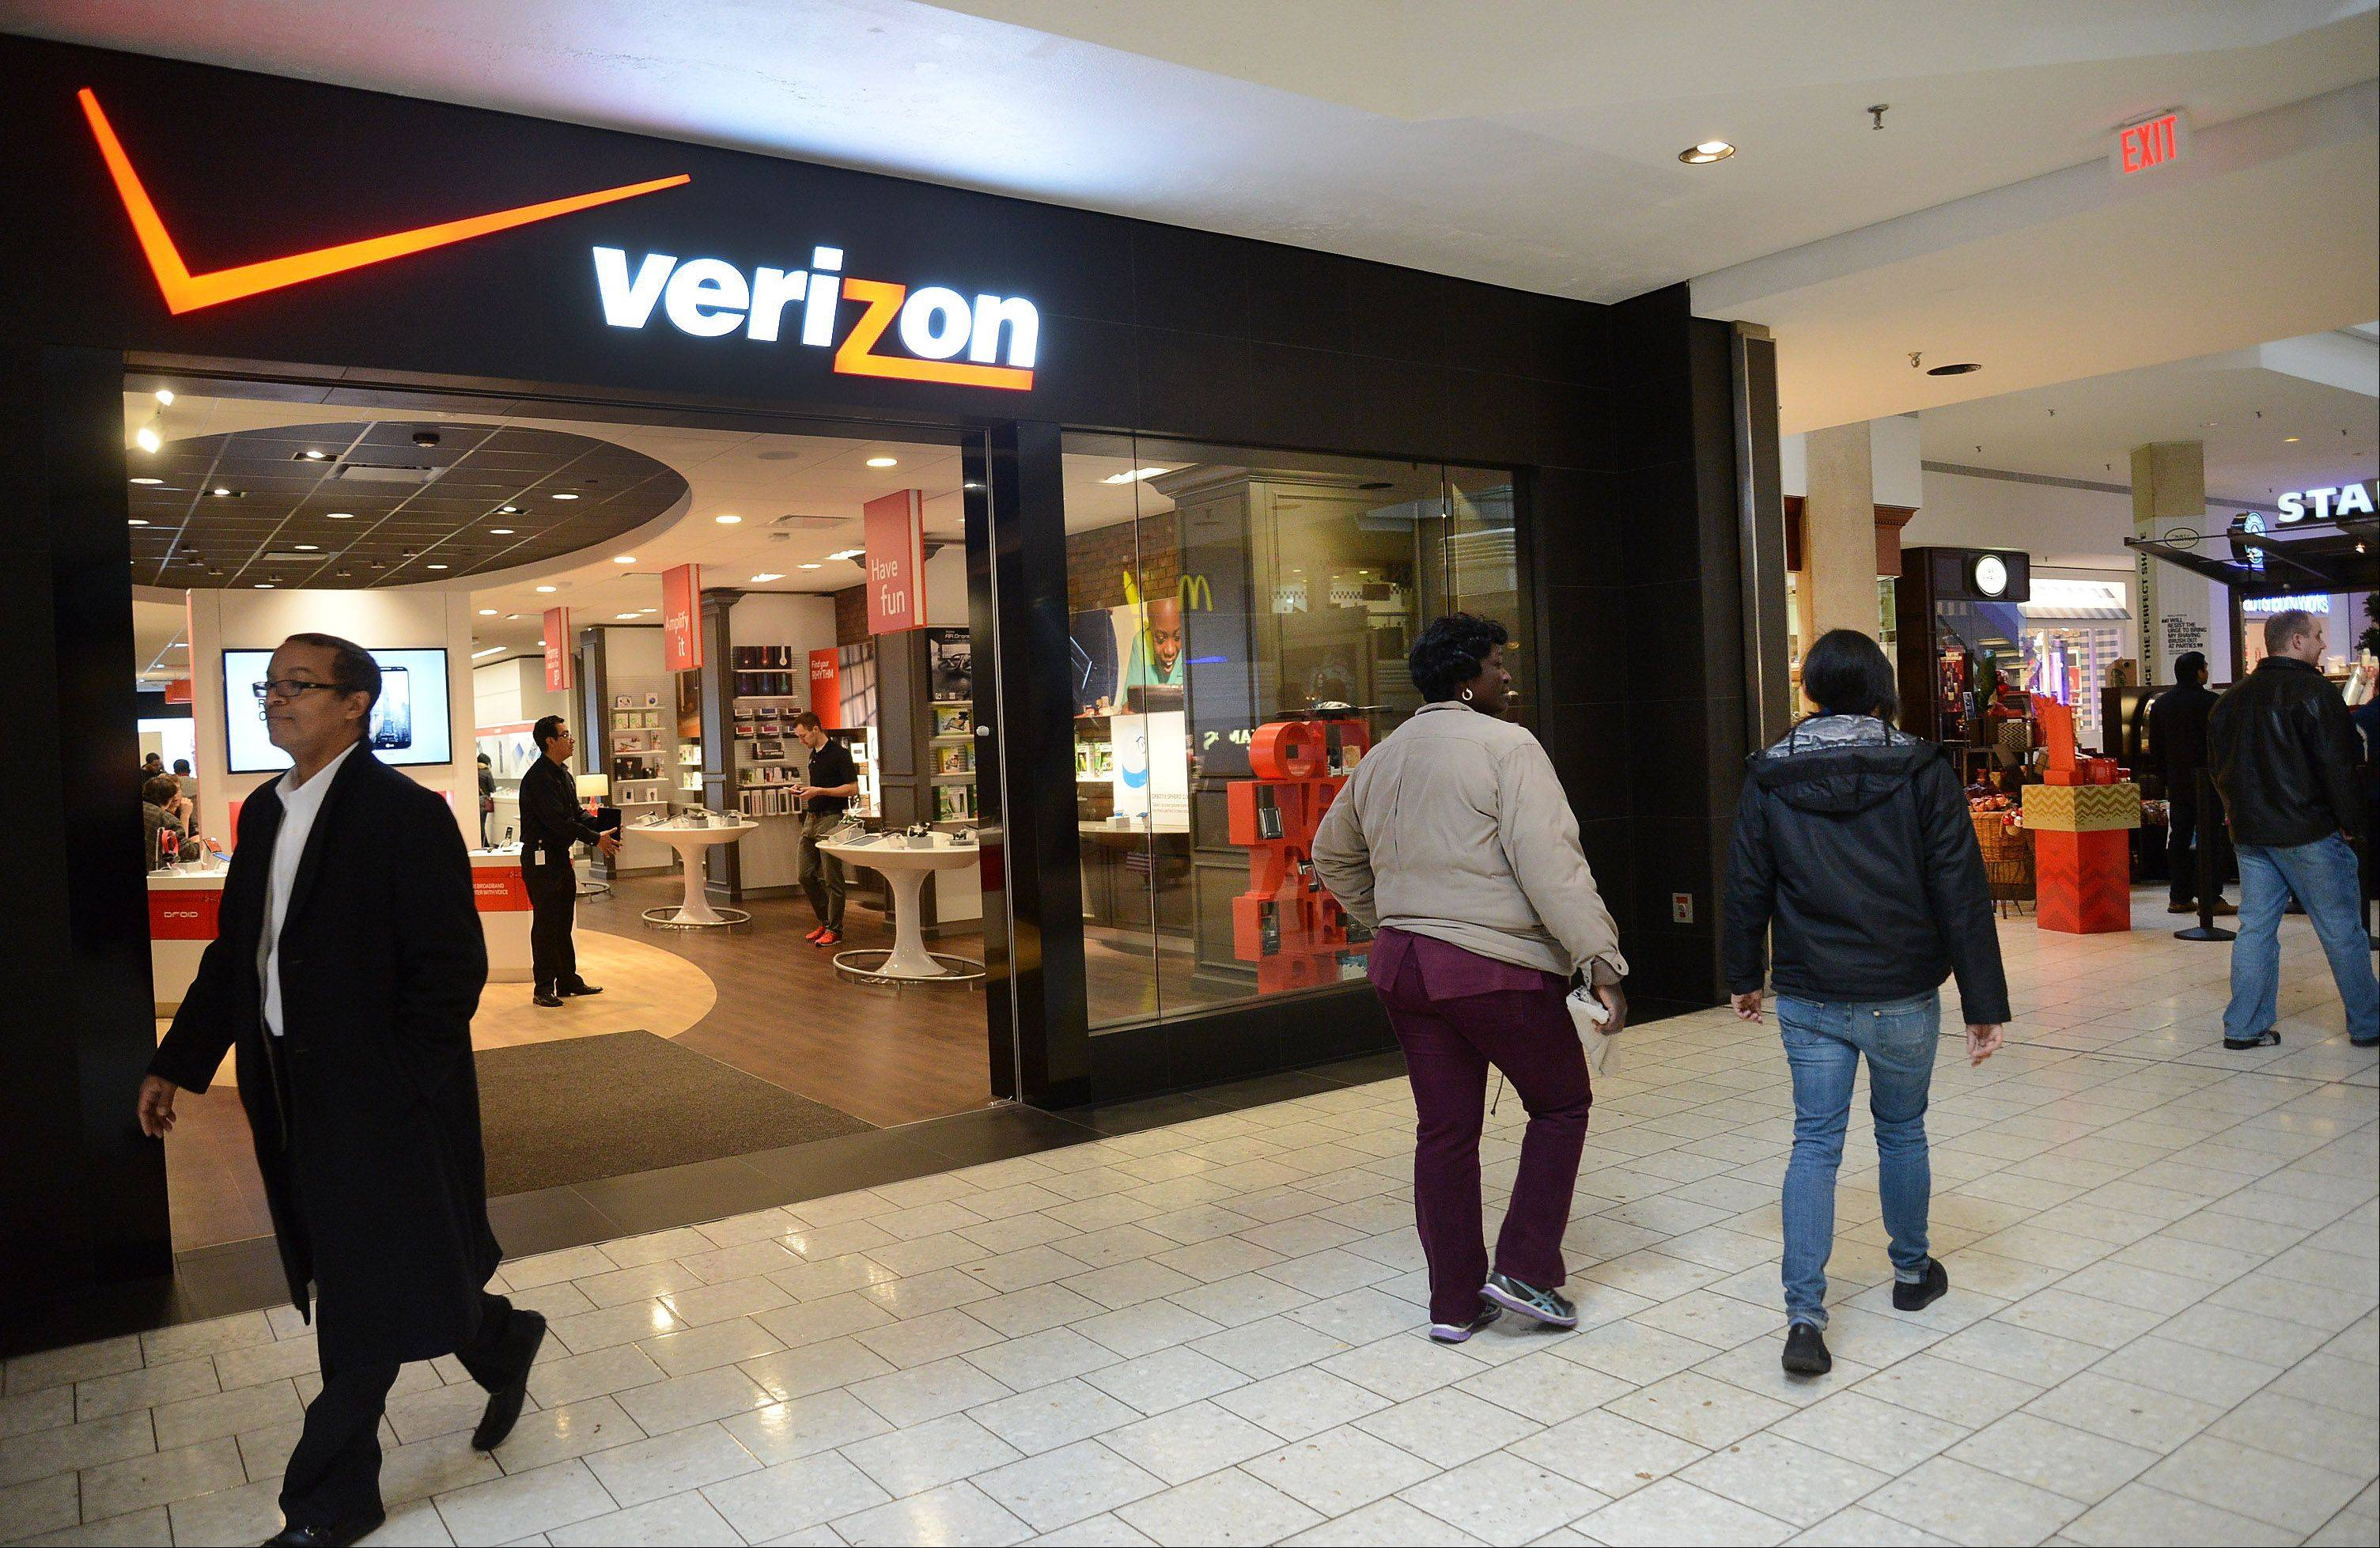 Verizon wireless' new Smart Store has opened in Woodfield Mall.